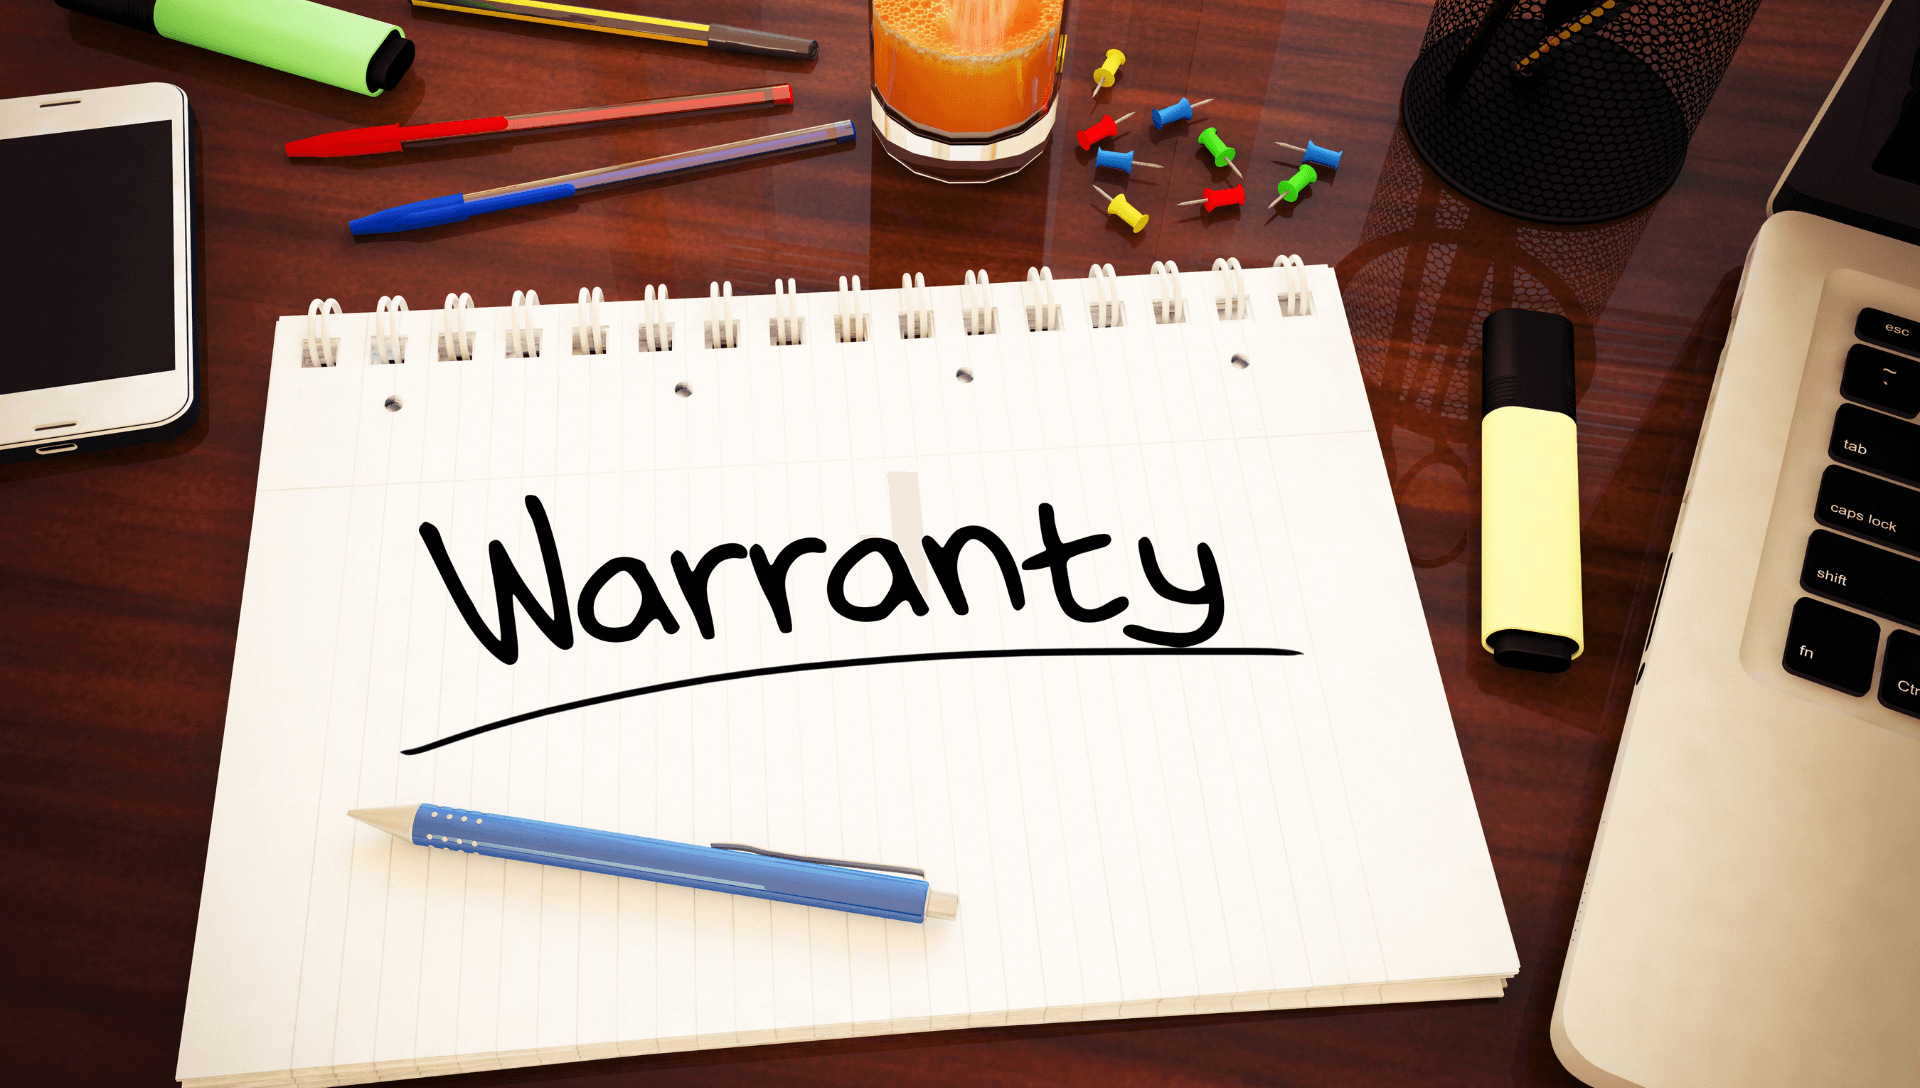 A notepad is on a desk with the work warranty written with black marker. On one side is a laptop and on the other side is a cell phone.